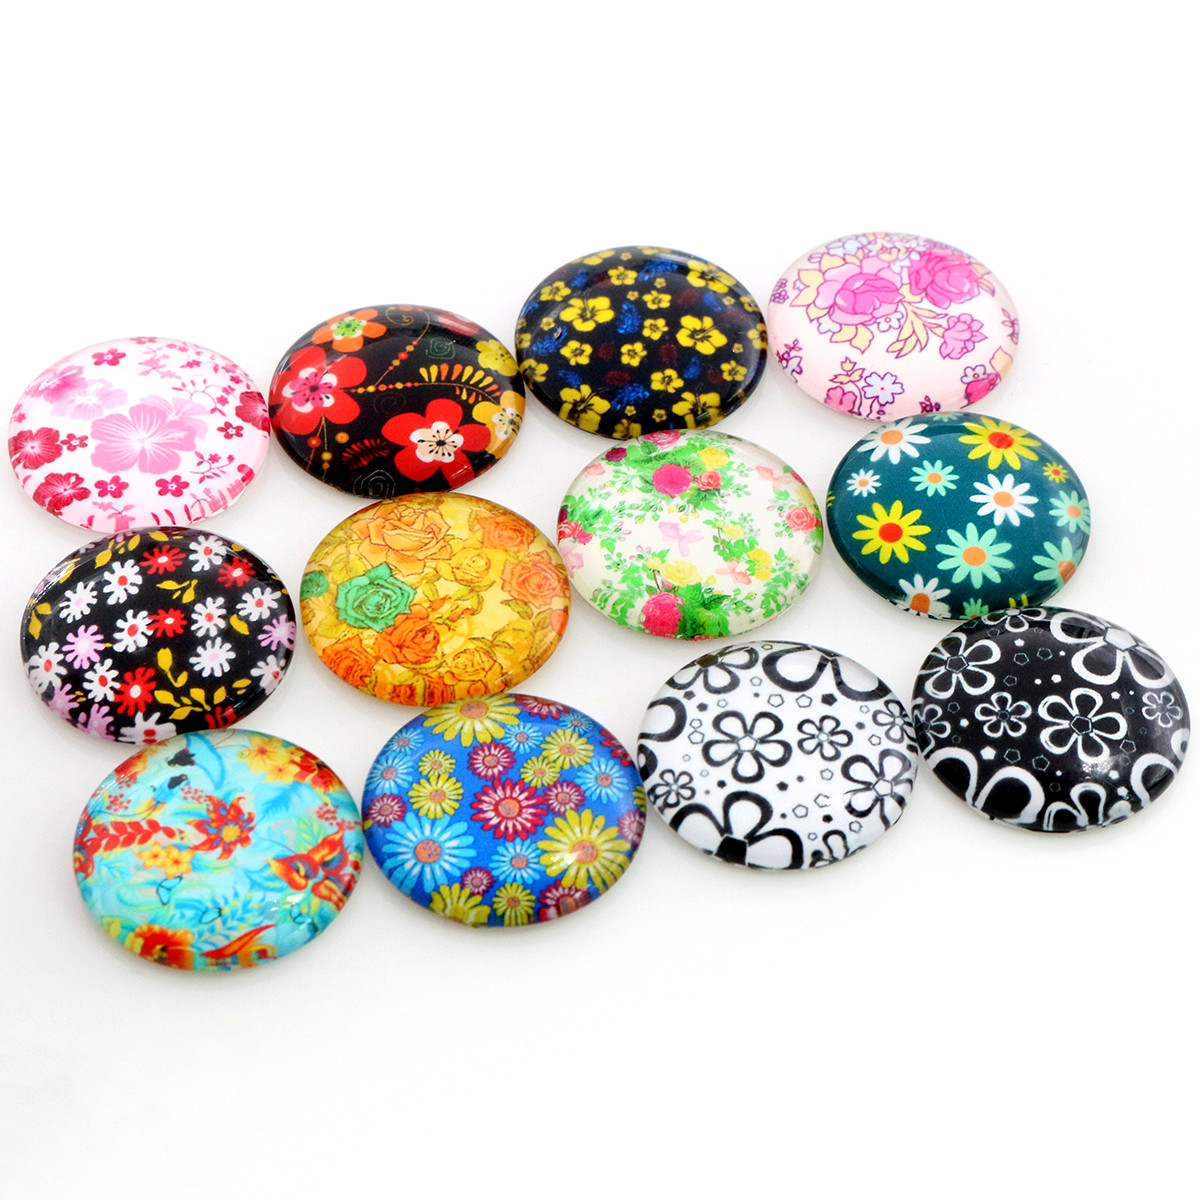 8mm 10mm 12mm-25mm Flower Print Photo Glass Cabochons Mixed Color Cabochons For Bracelet Earrings Necklace Bases Settings